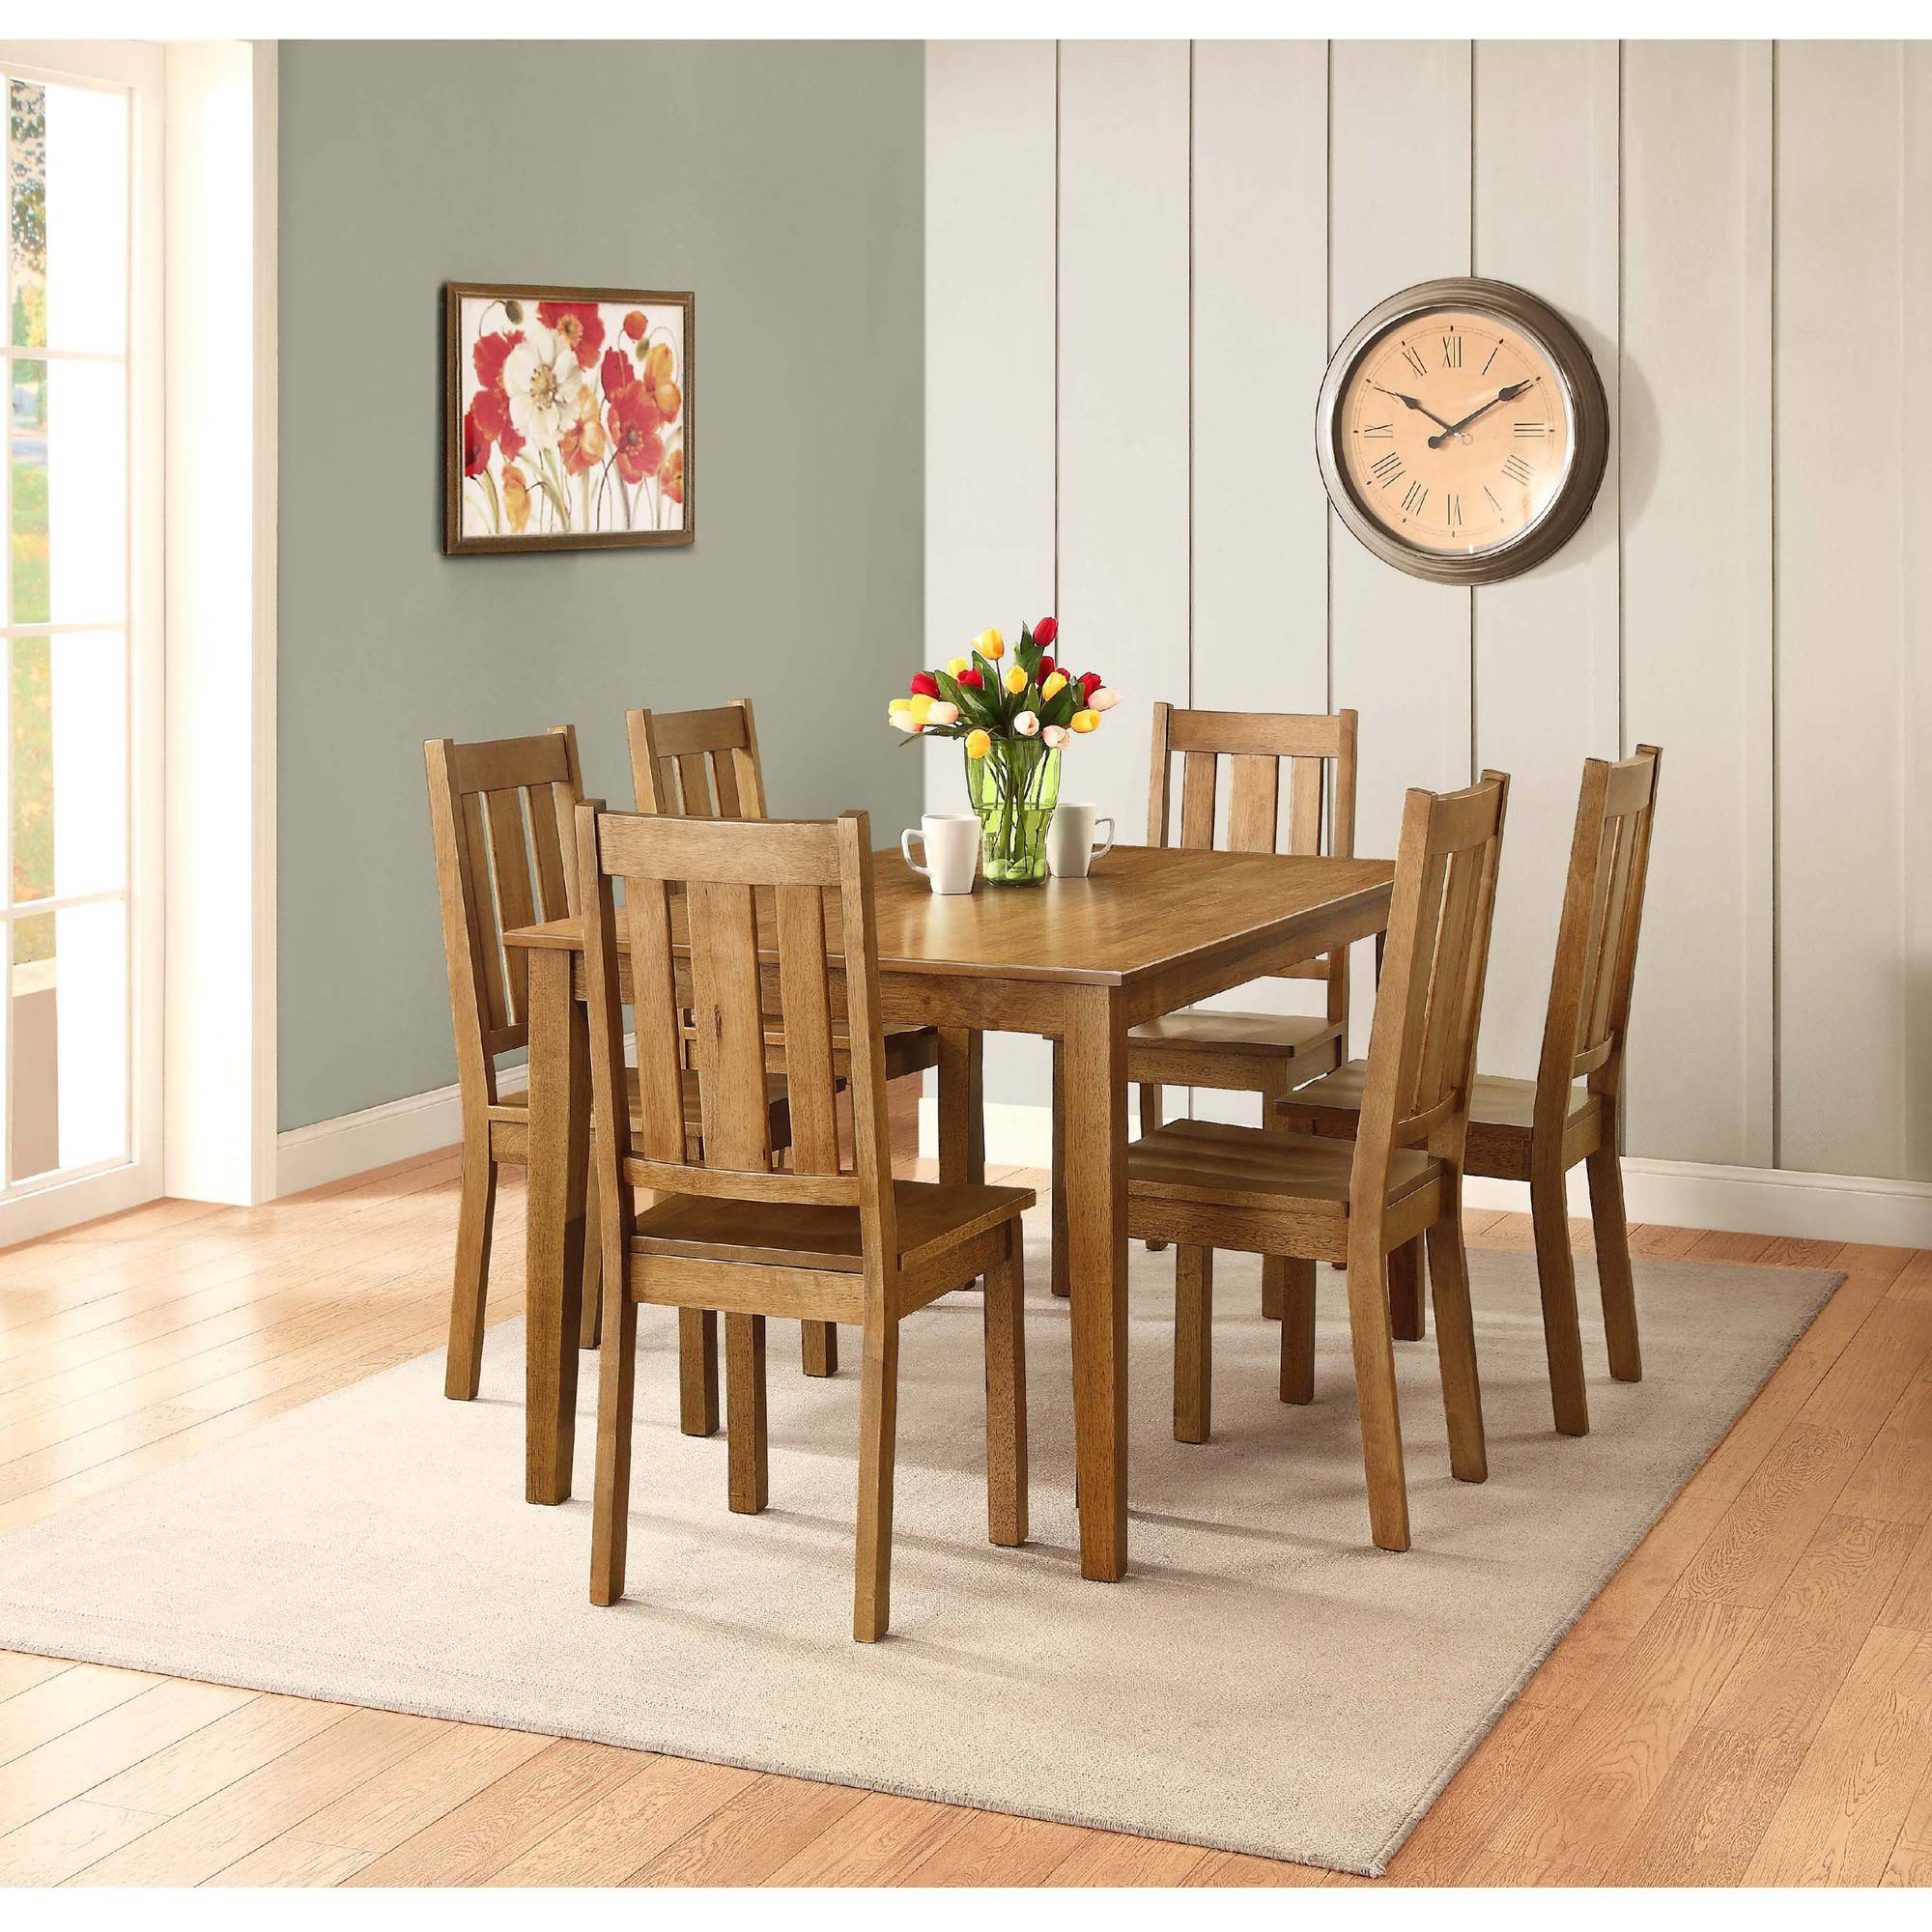 Wood Dining Chairs Classic Wood Dining Chair Kitchen Desk Chairs Solid Wood